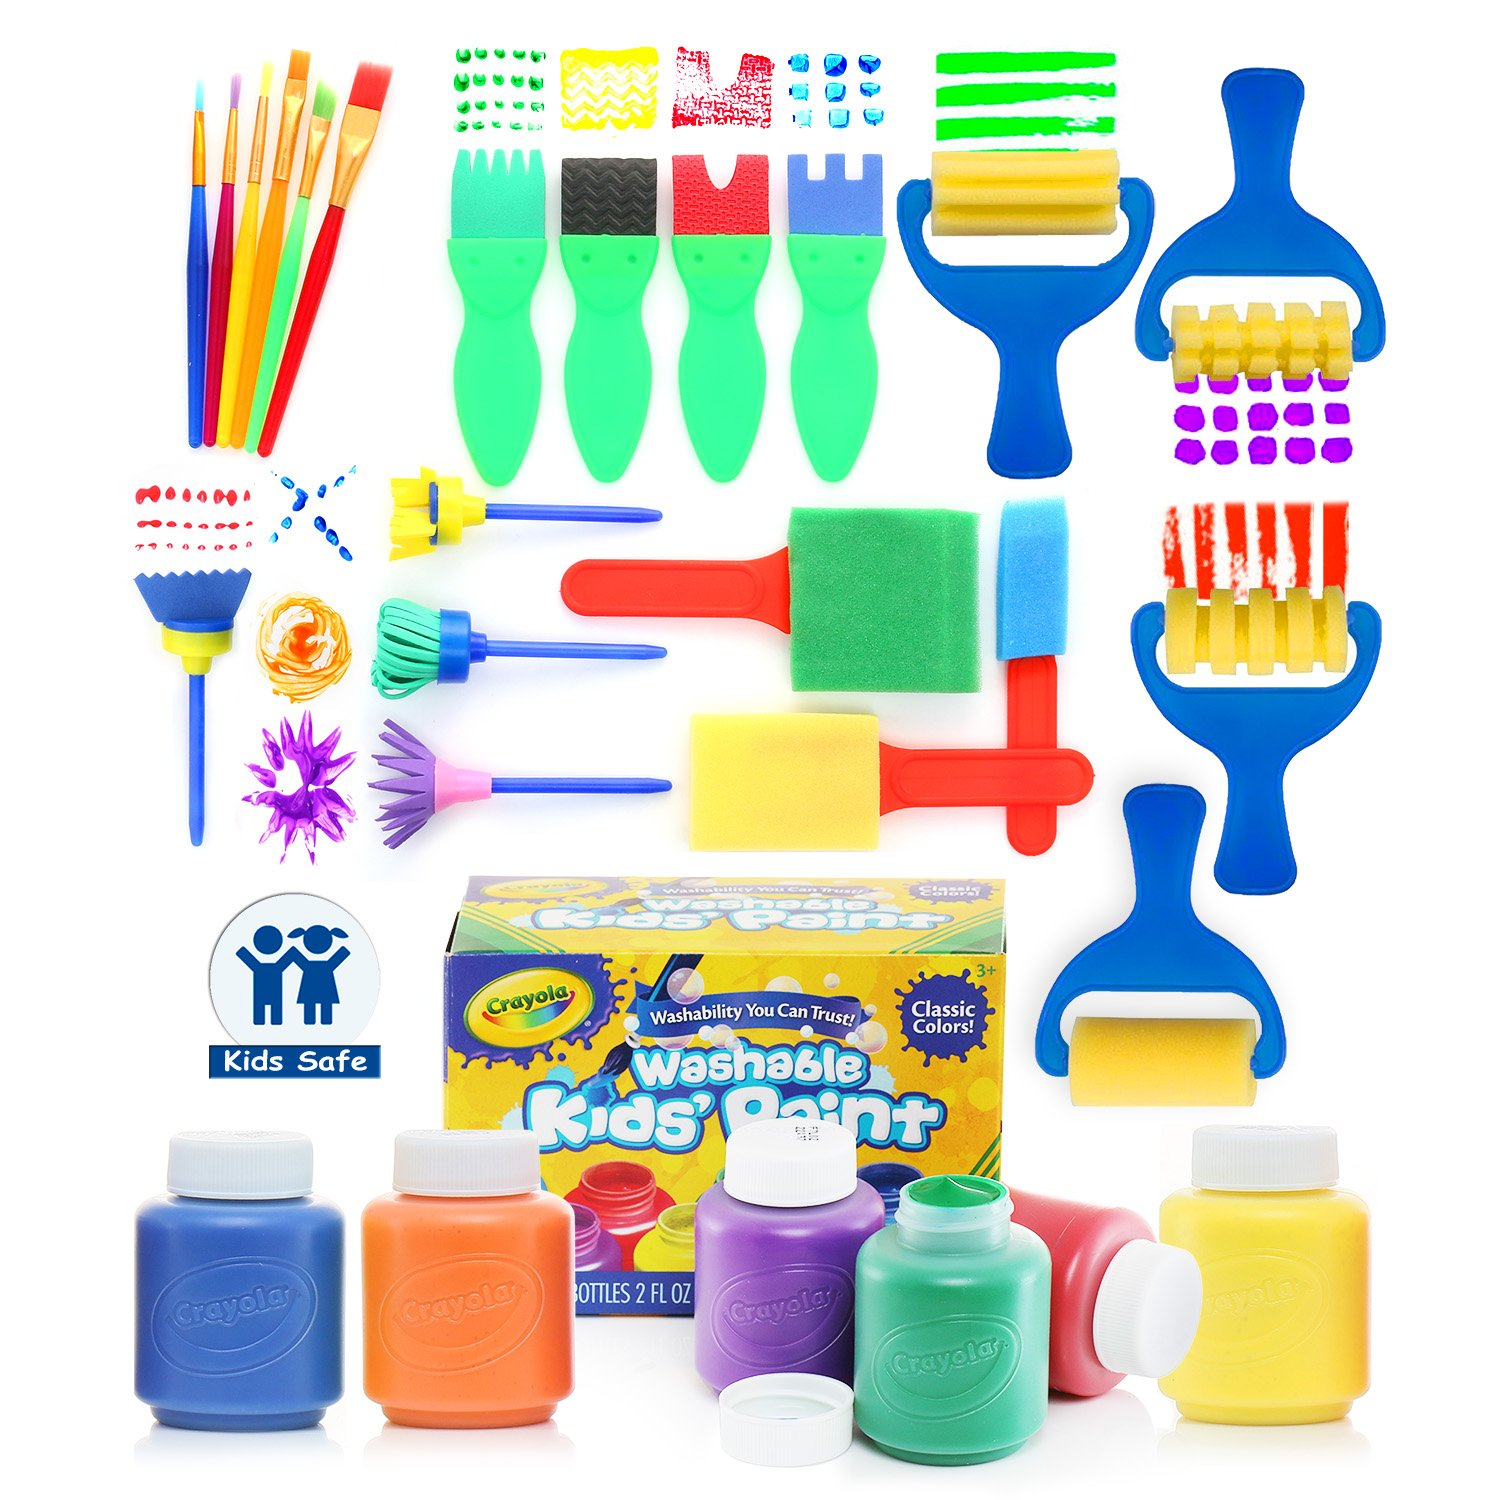 Glokers Early Learning Kids Paint Set, 28 Piece Mini Flower Sponge Paint Brushes. Assorted Painting Drawing Tools in a Clear Durable Storage Pouch. Including 6 Crayola Washable Kids Paint by glokers